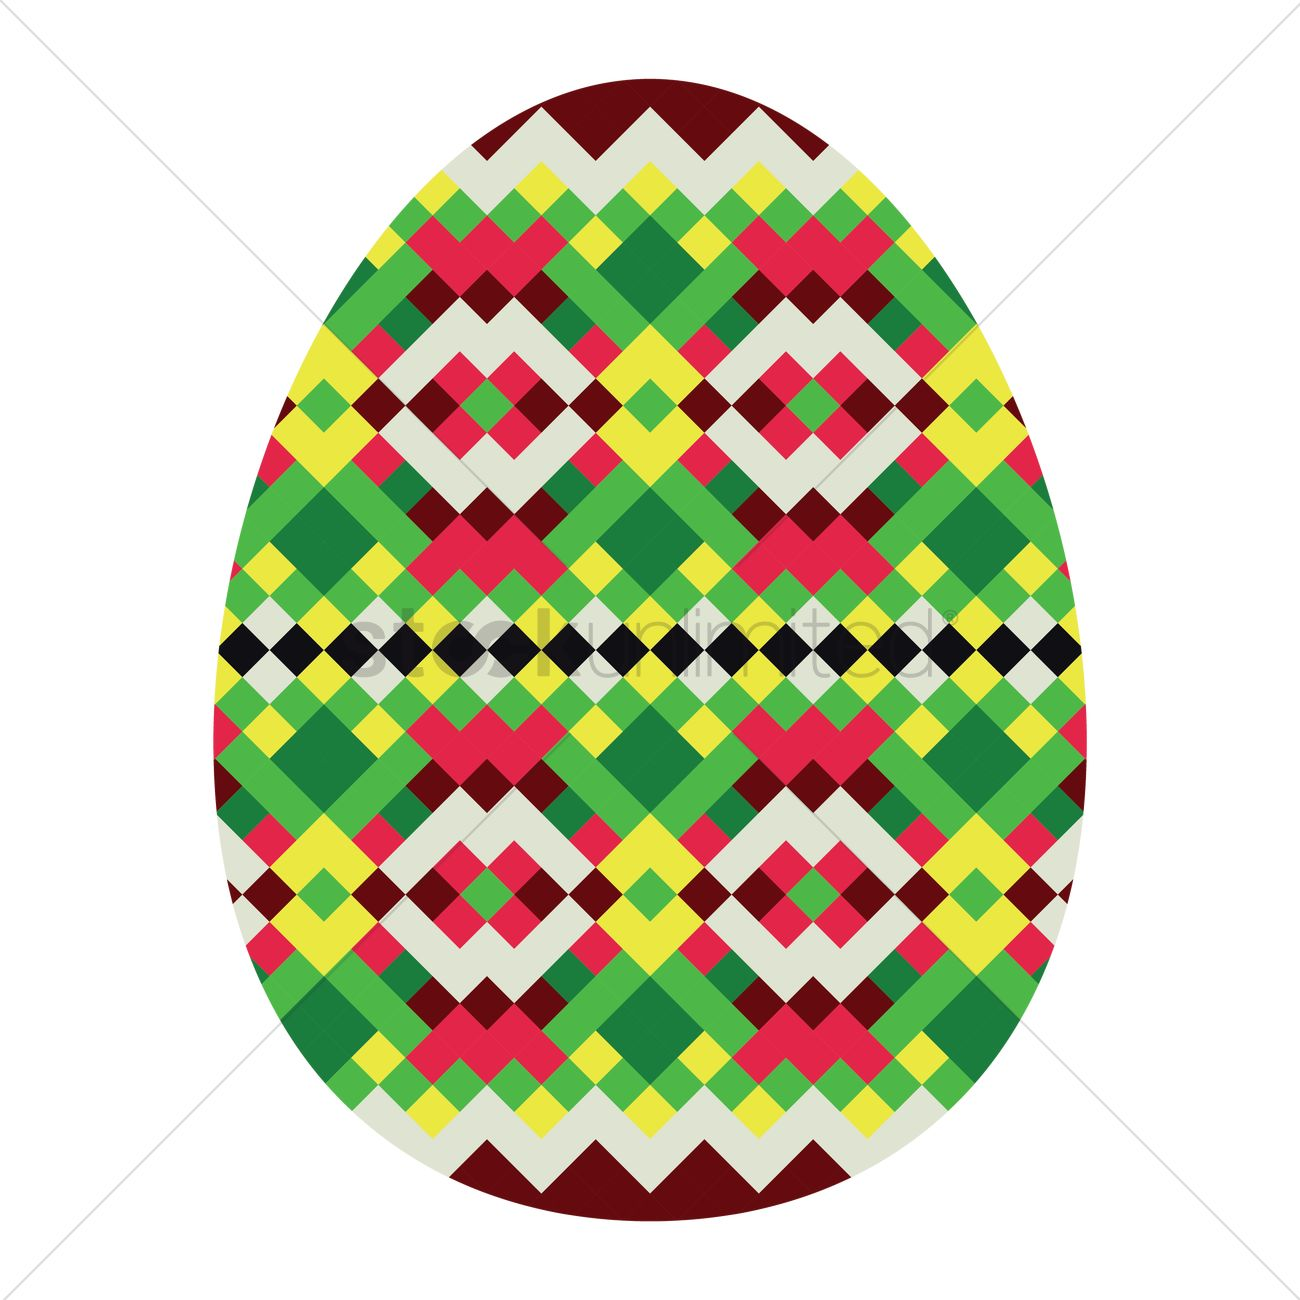 Geometrical Easter Egg Patterns Vector Image 1323227 Stockunlimited